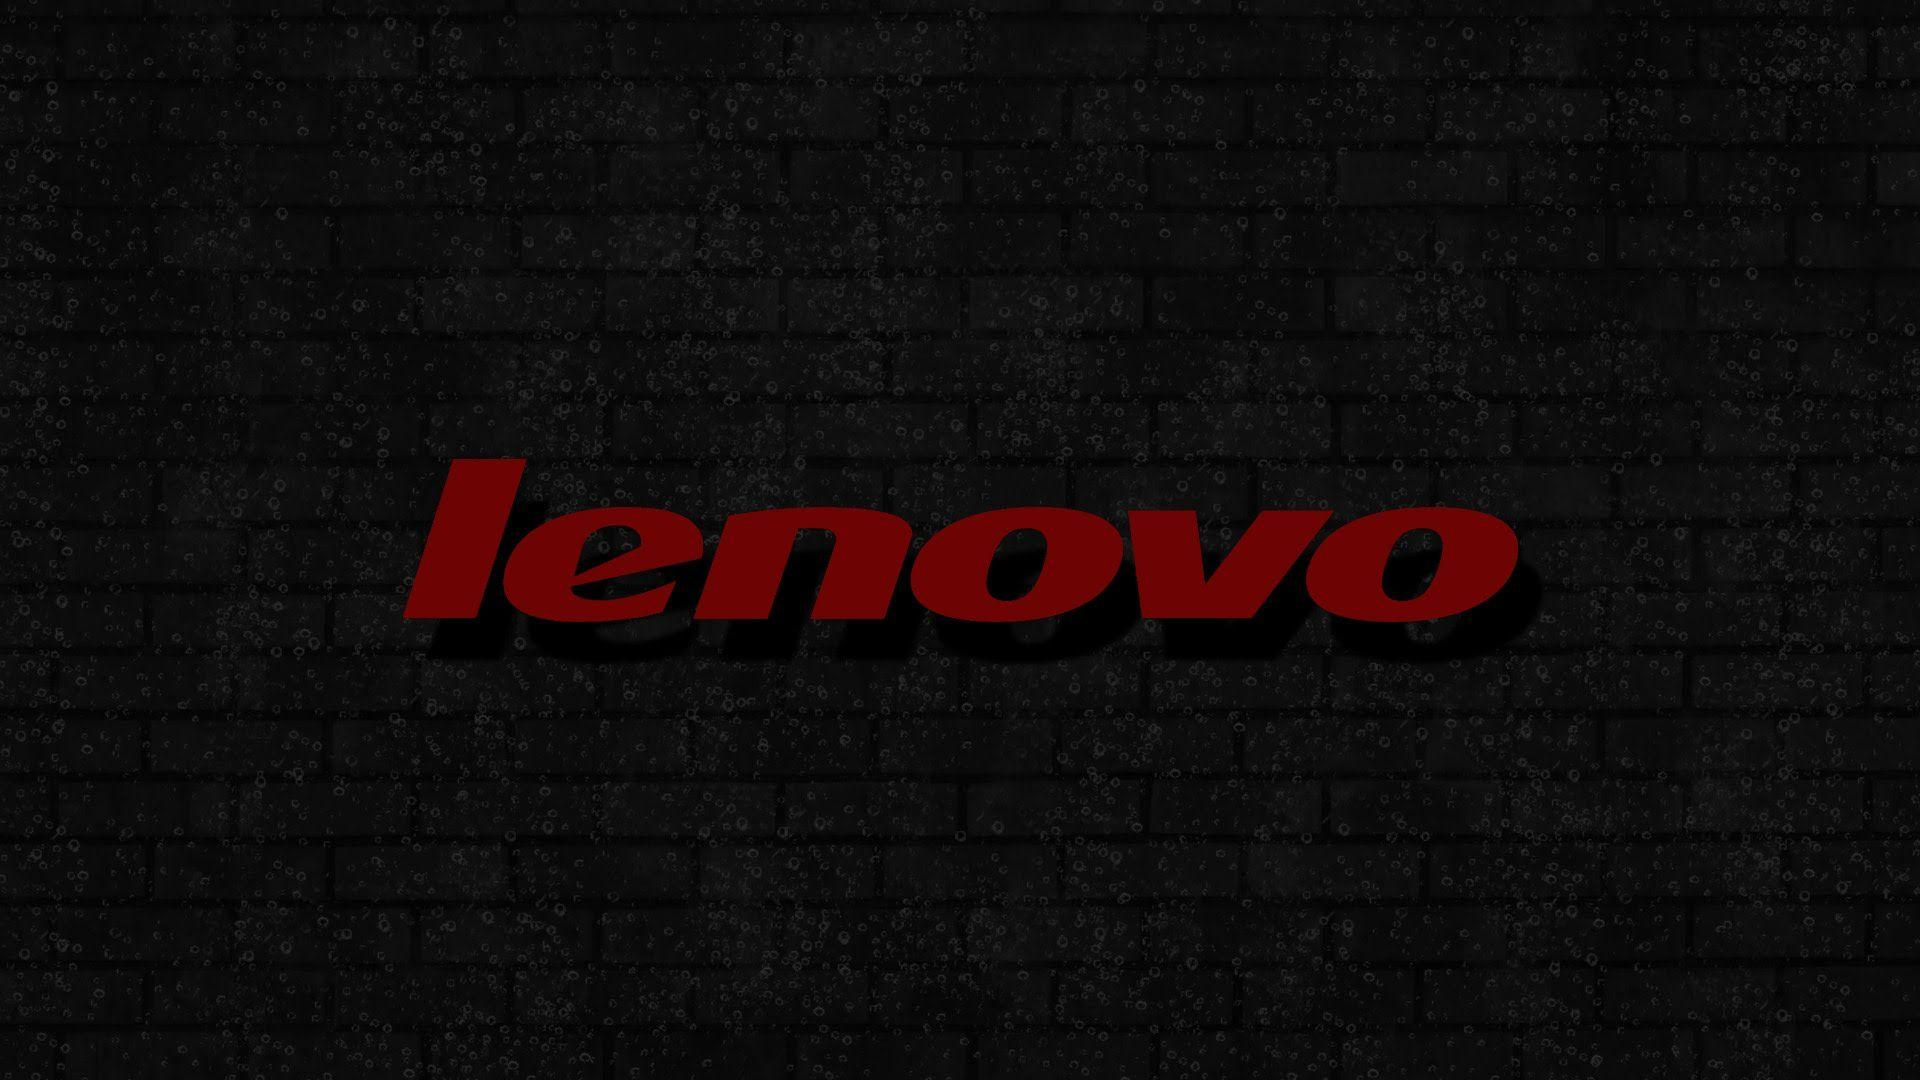 Lenovo Thinkpad Backgrounds Hd Wallpaper Cave